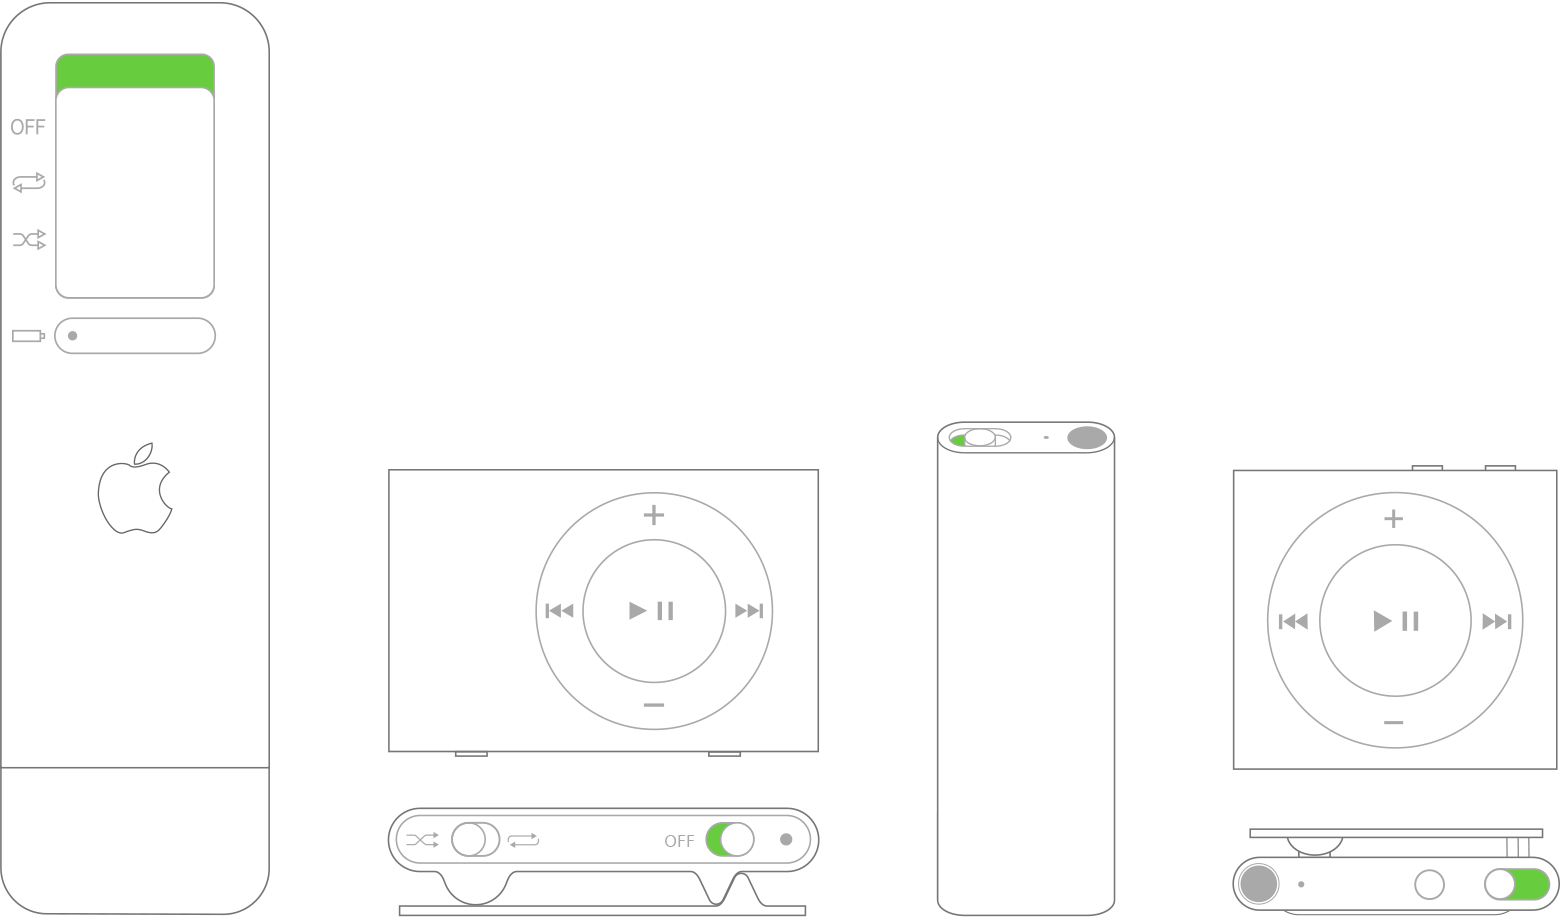 iPod shuffle power switch